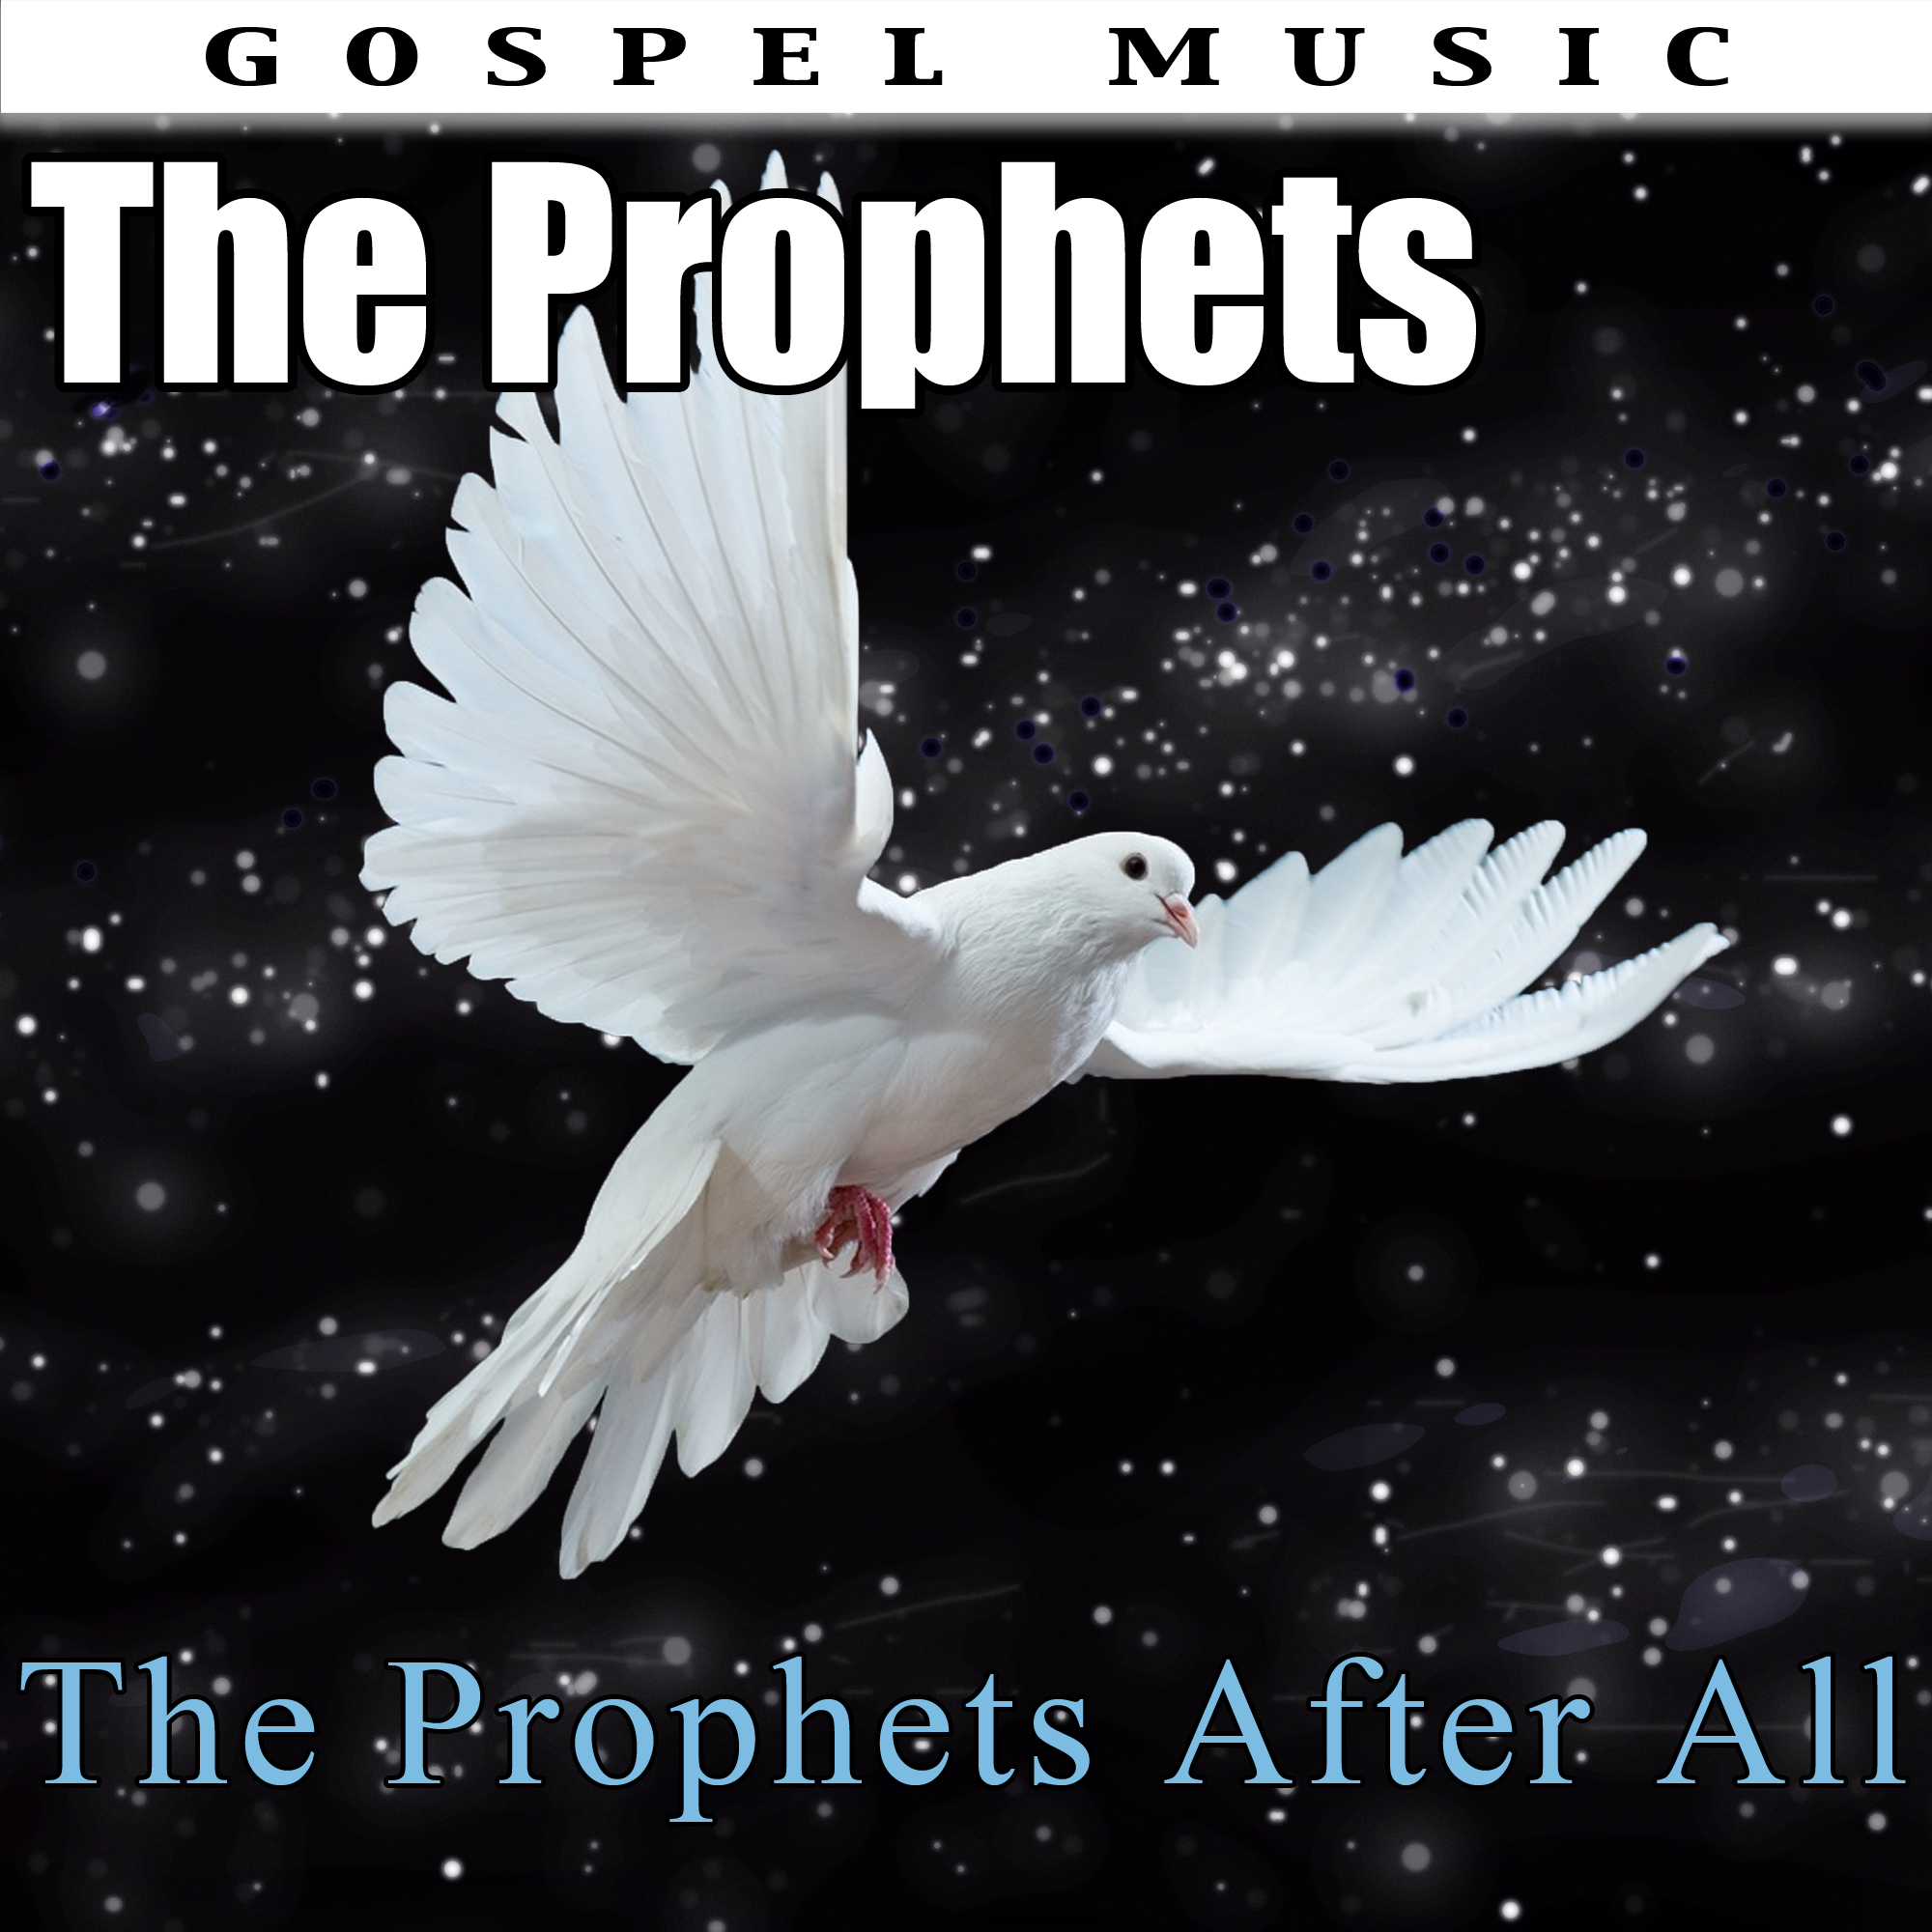 The Prophets – The Prophets After All